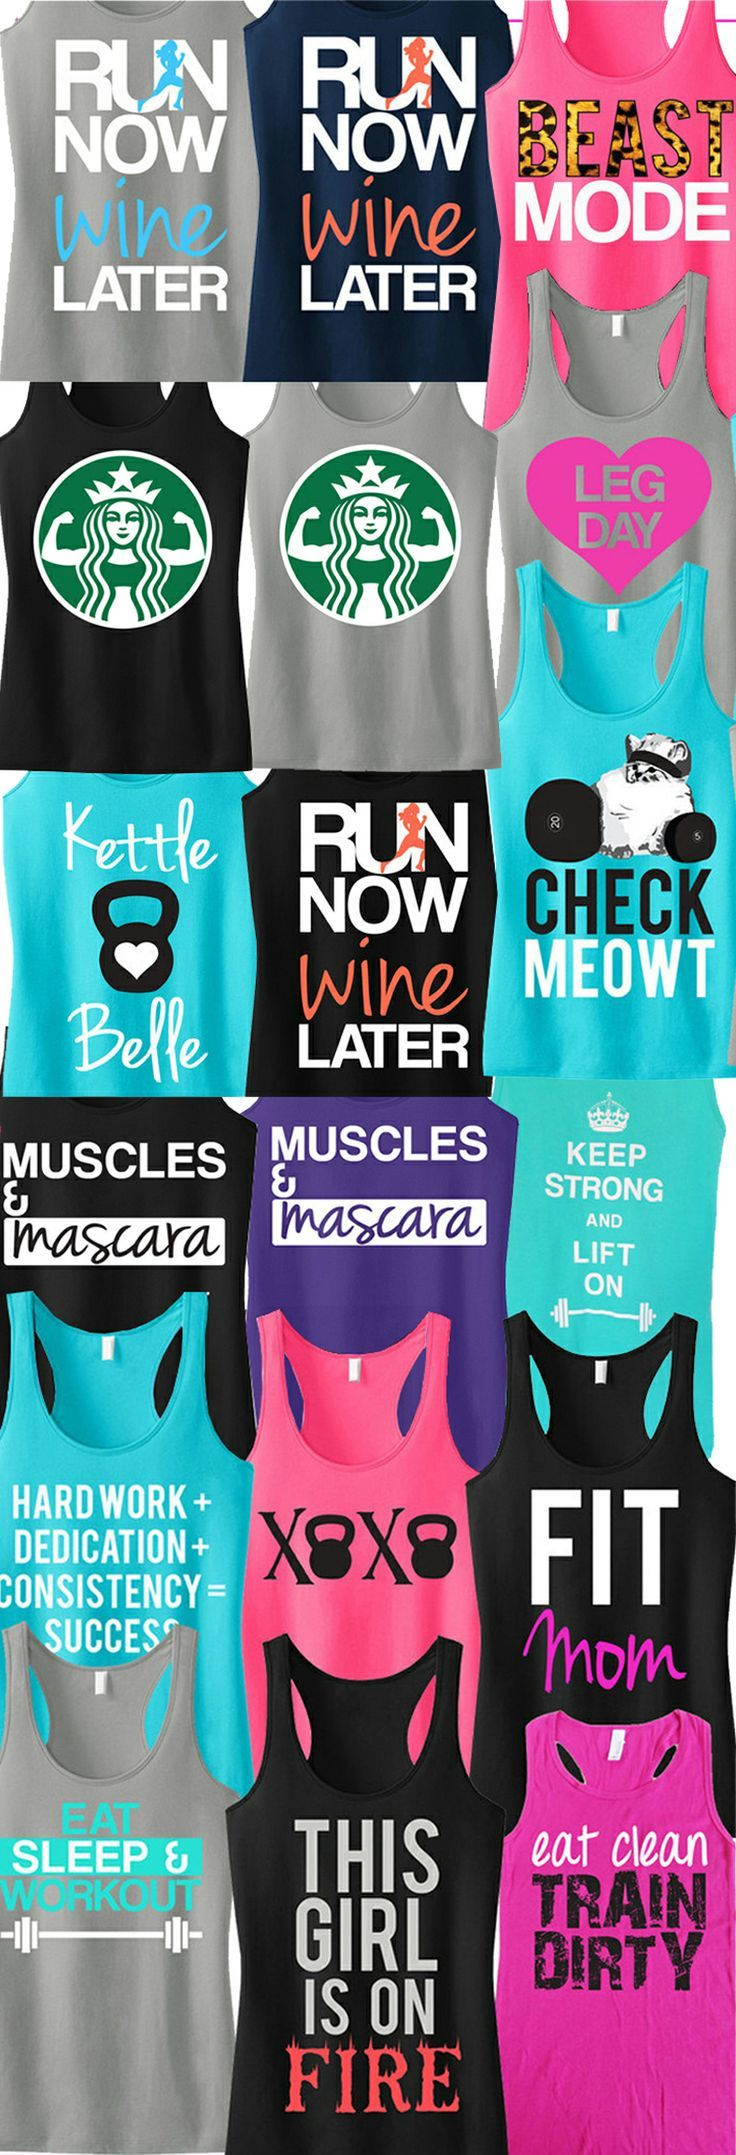 Justine - I really kind of want all these lol